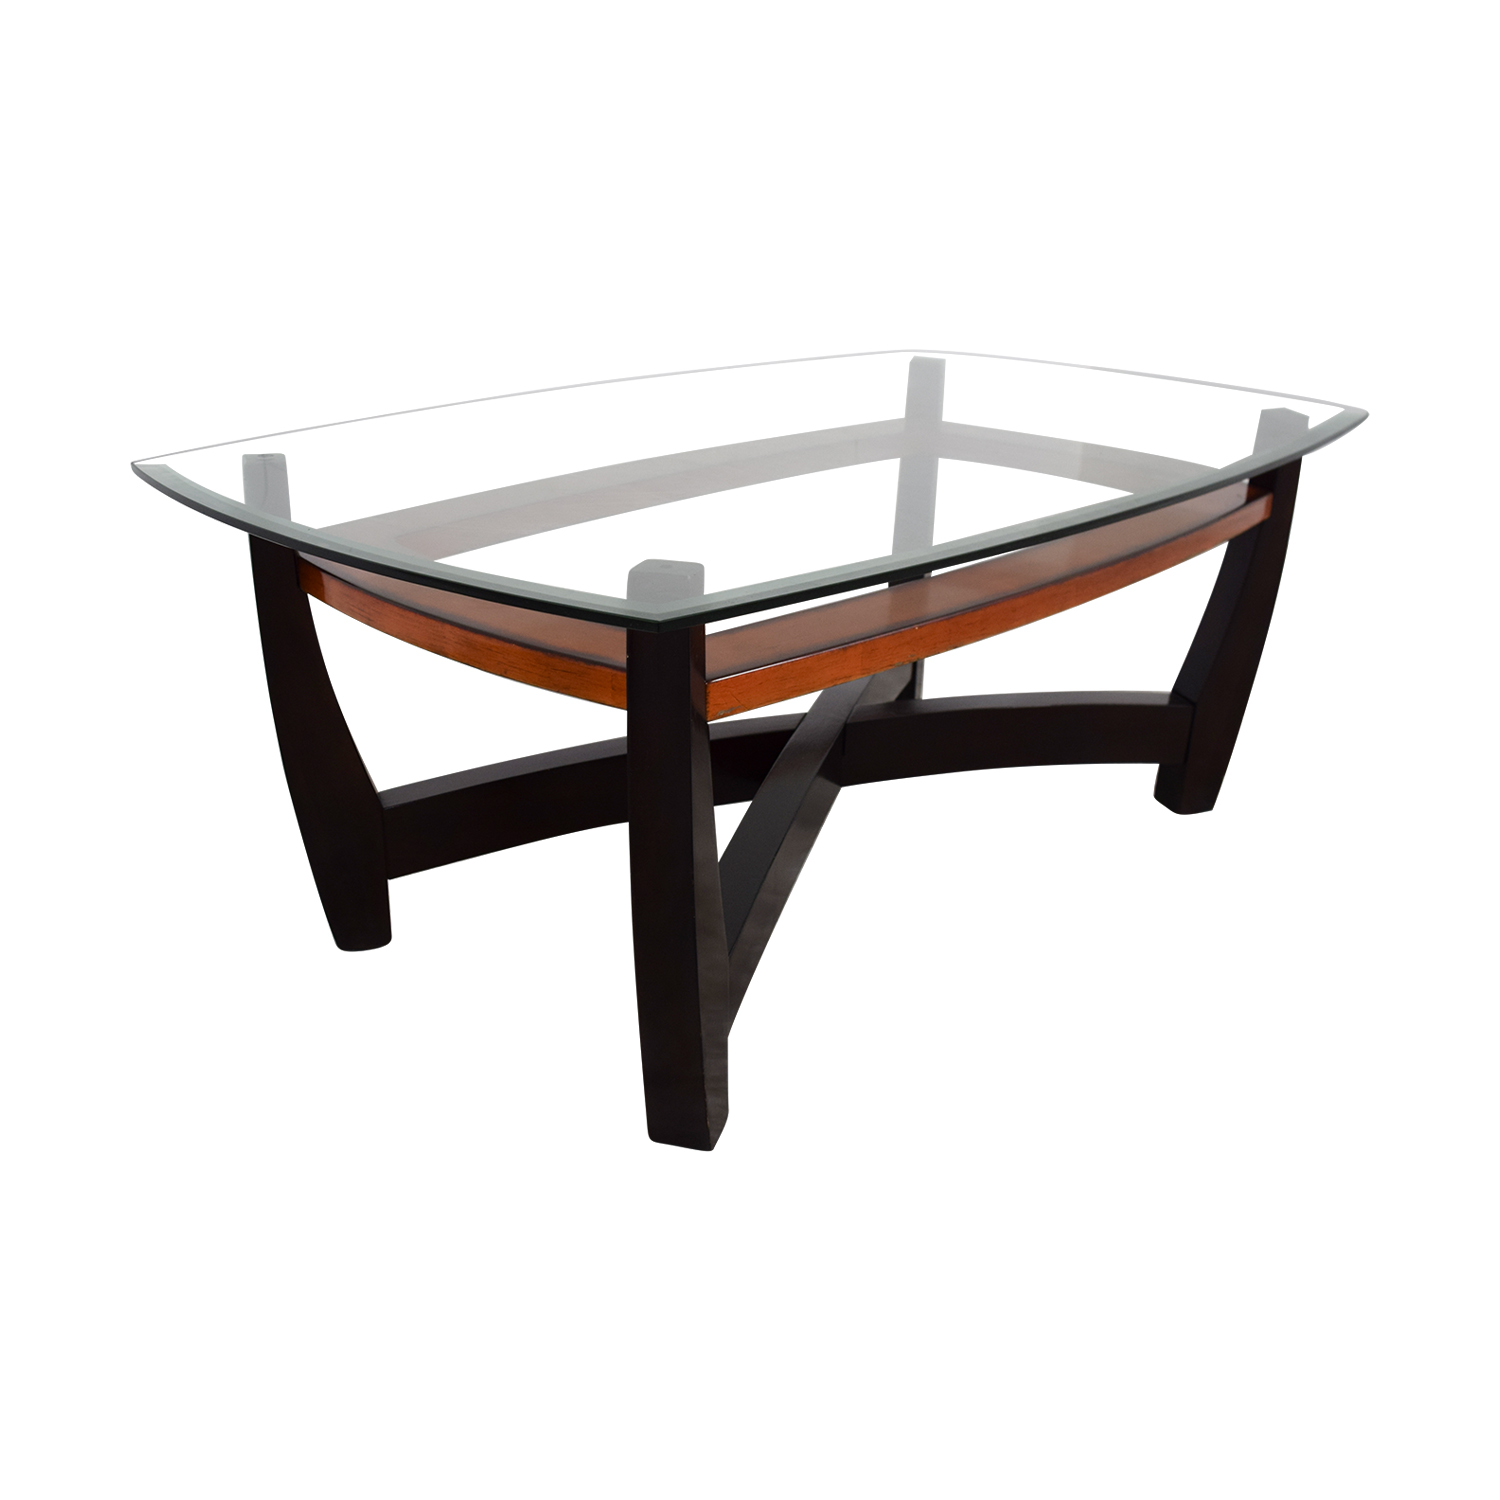 76 off raymour flanigan raymour flanigan rectangular glass top and wood coffee table tables. Black Bedroom Furniture Sets. Home Design Ideas